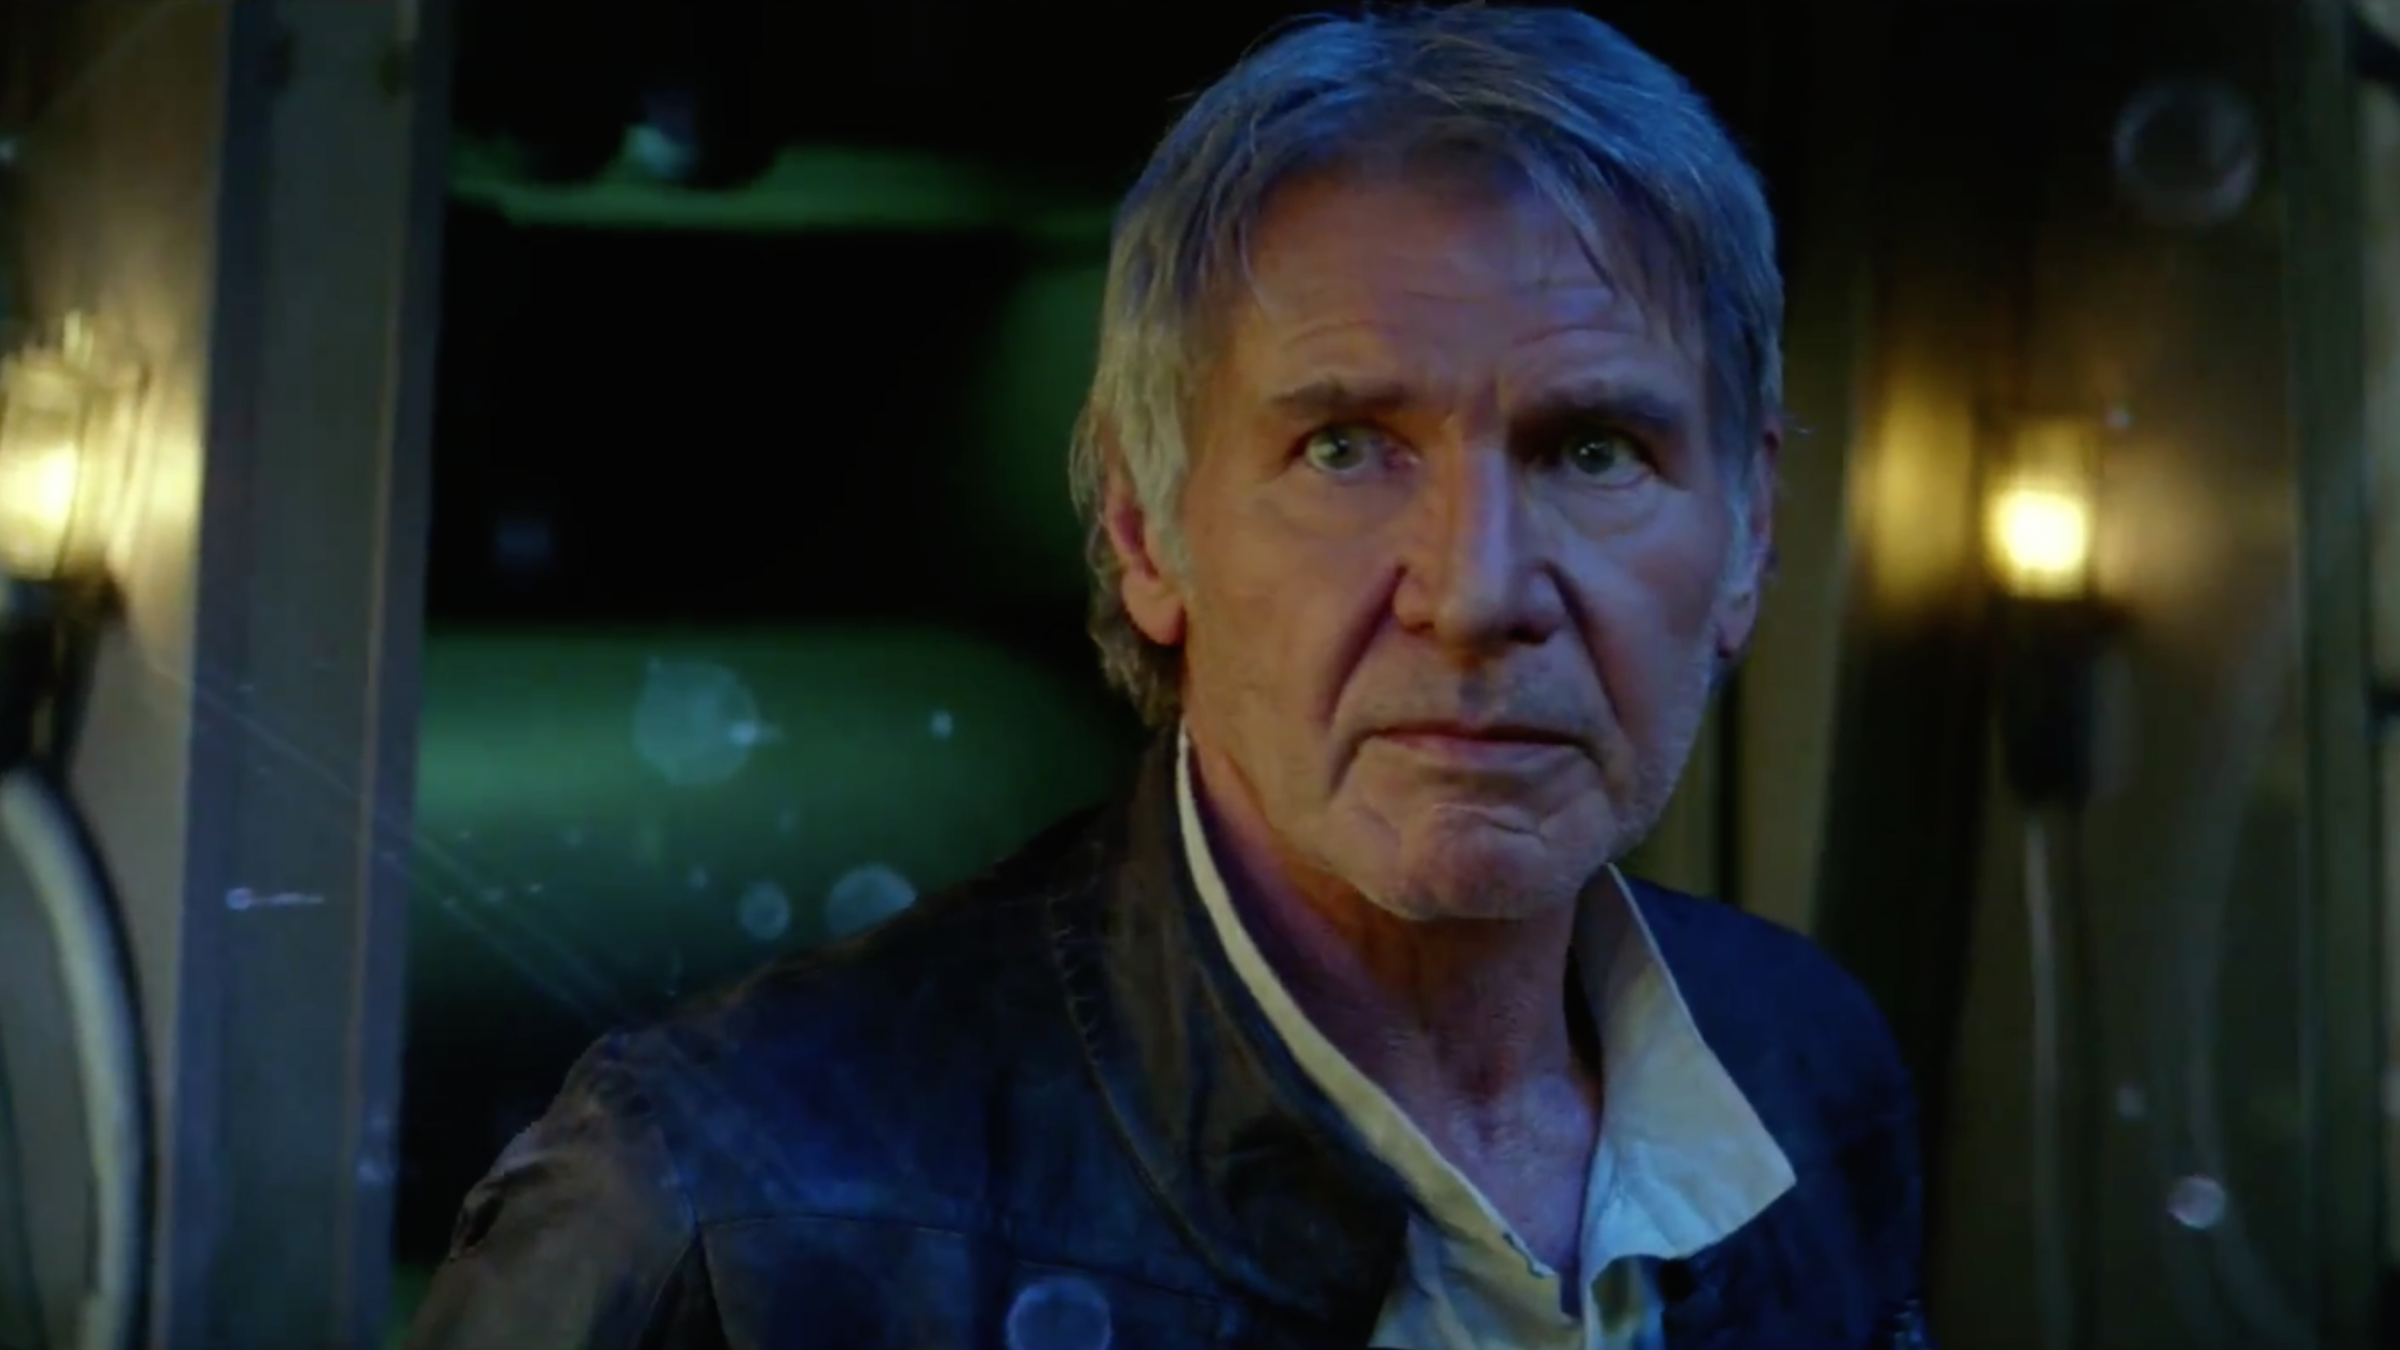 Newest 'Star Wars: The Force Awakens' Trailer Pulls Out All the VFX Stops